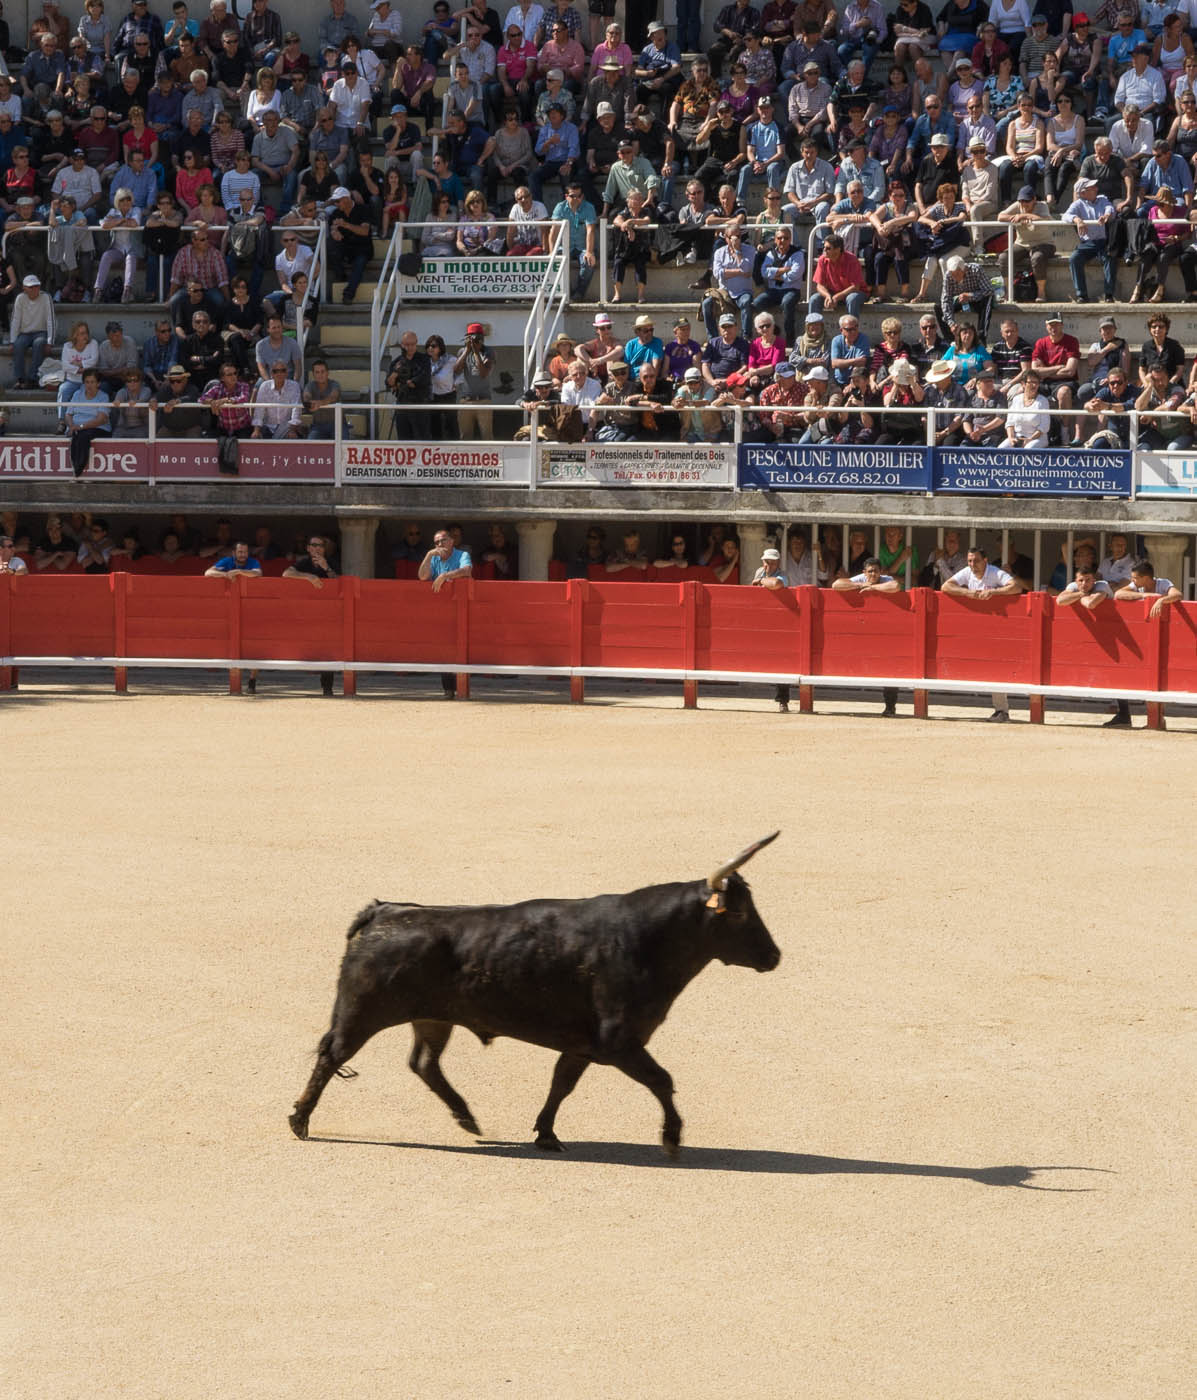 A camargue bull enters the bullring in Lunel, Provence